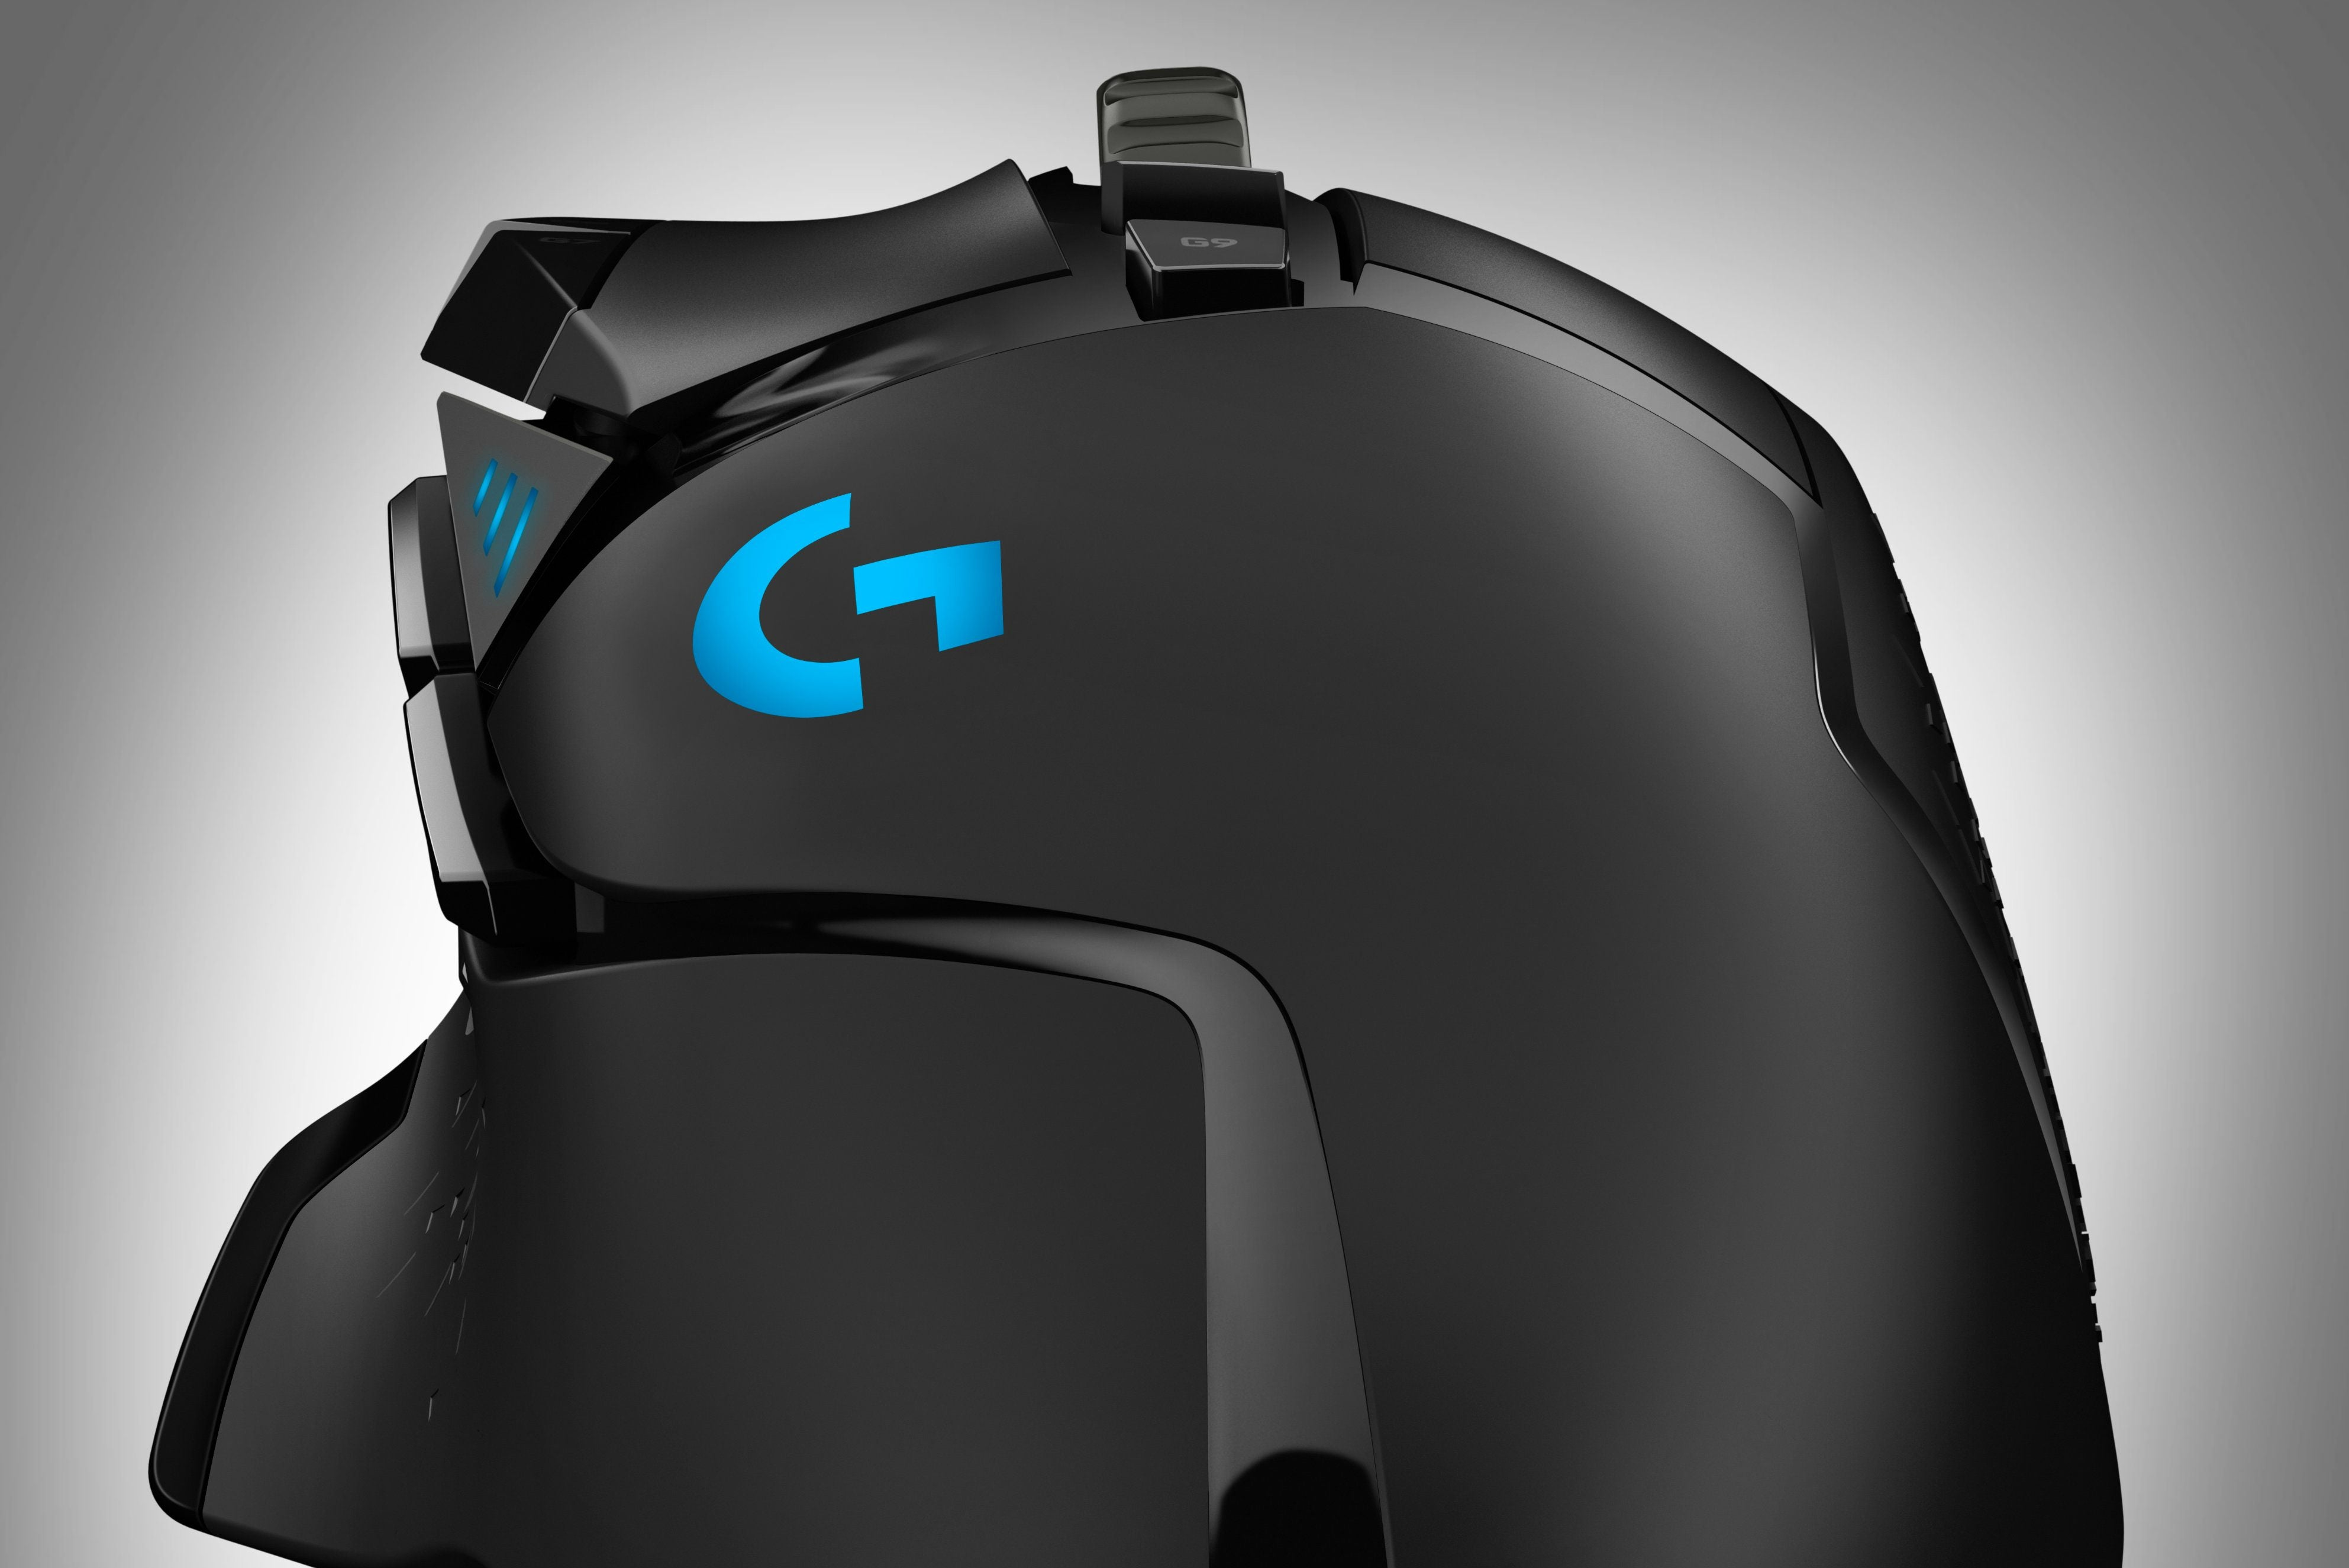 Logitech's G502 gaming mouse gets a super-accurate HERO 16K sensor